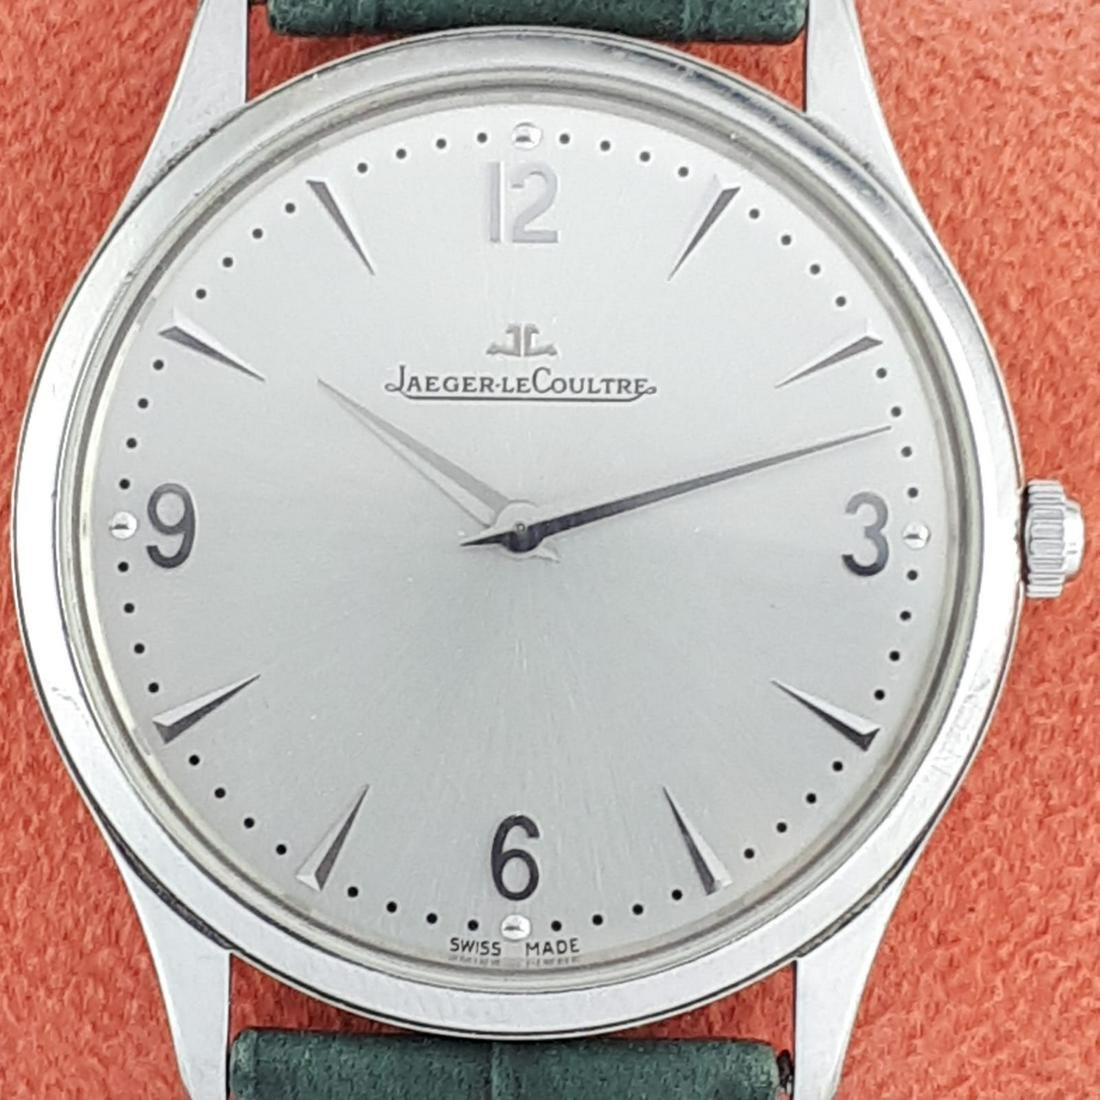 Jaeger-LeCoultre - Master Ultra Thin - Ref: 172.8.79.S